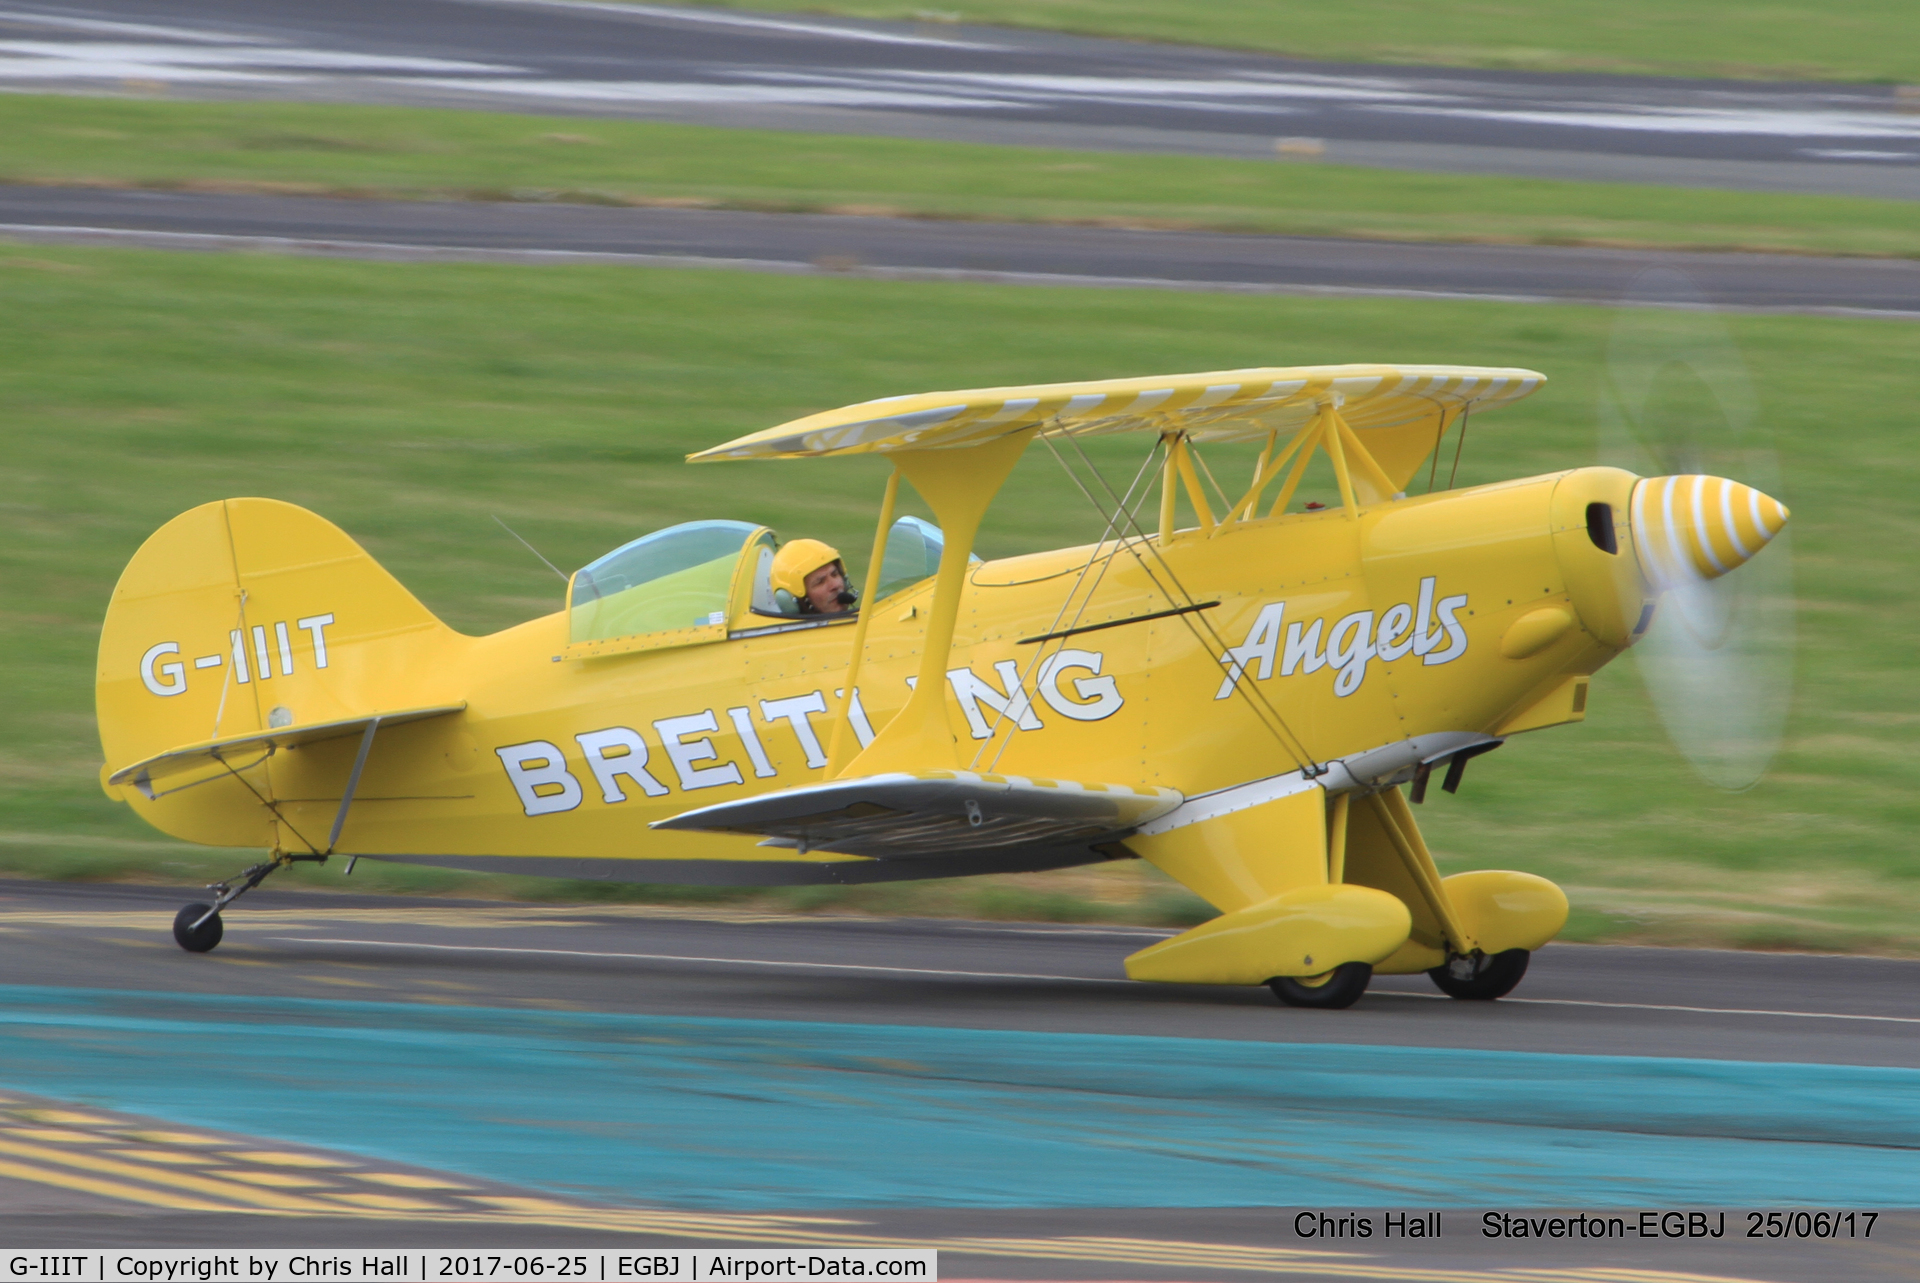 G-IIIT, 1980 Pitts S-2A Special C/N 2222, Project Propeller at Staverton